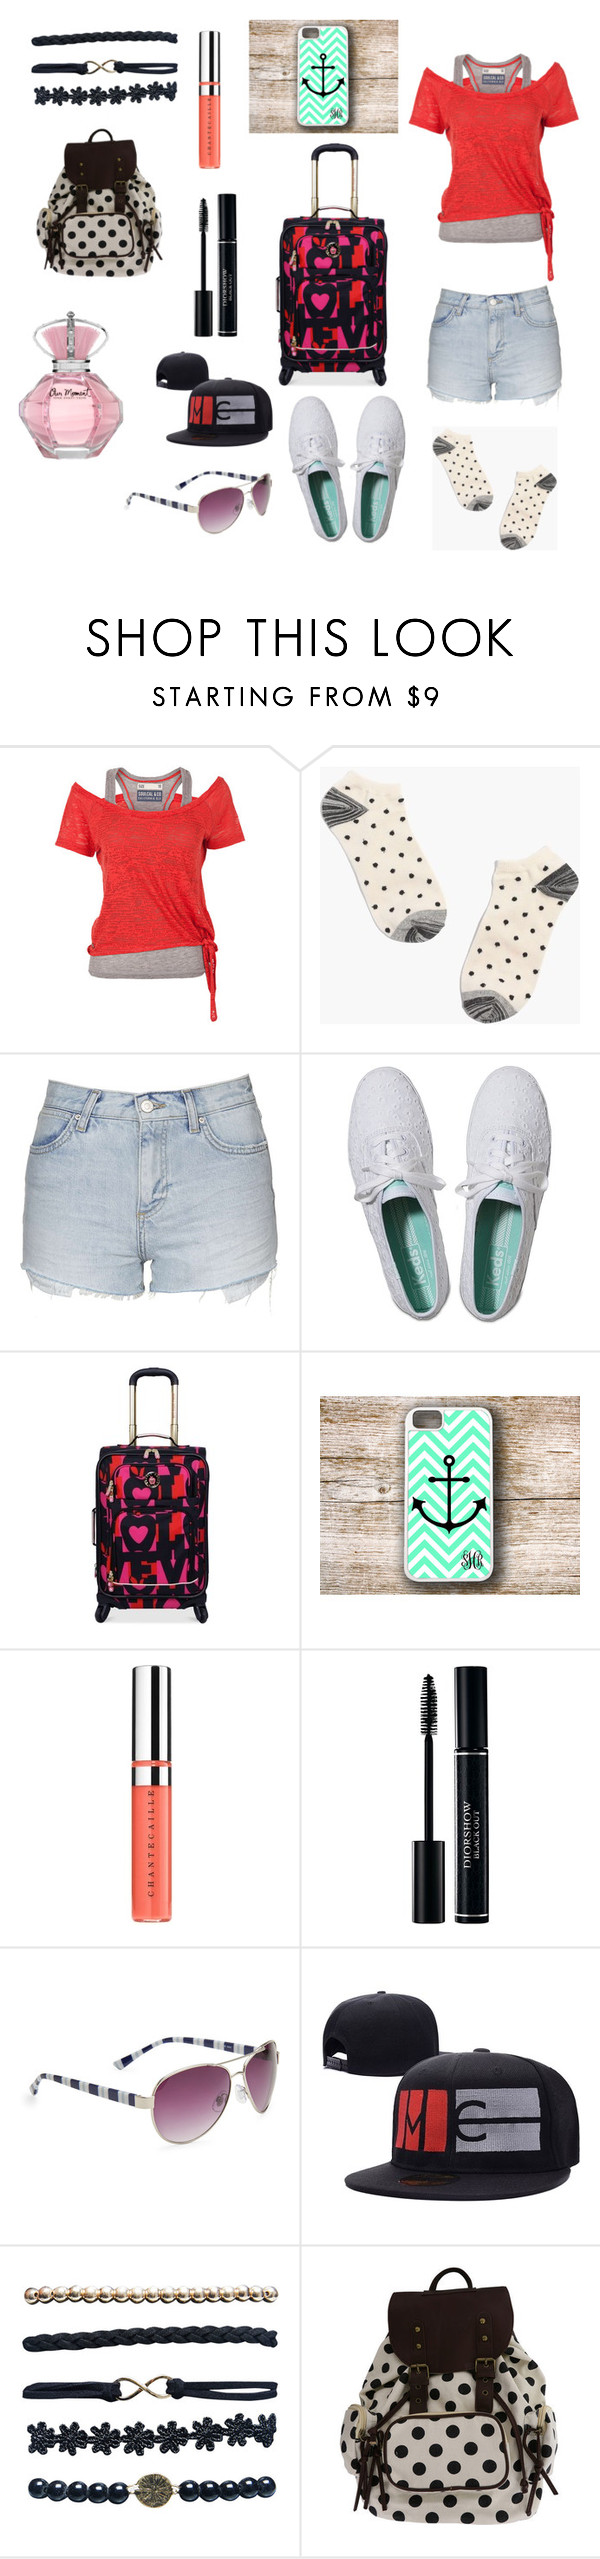 """""""Untitled #292"""" by ramisha405 ❤ liked on Polyvore featuring Soul Cal, Madewell, Topshop, Keds, Chantecaille, Aéropostale and Wet Seal"""